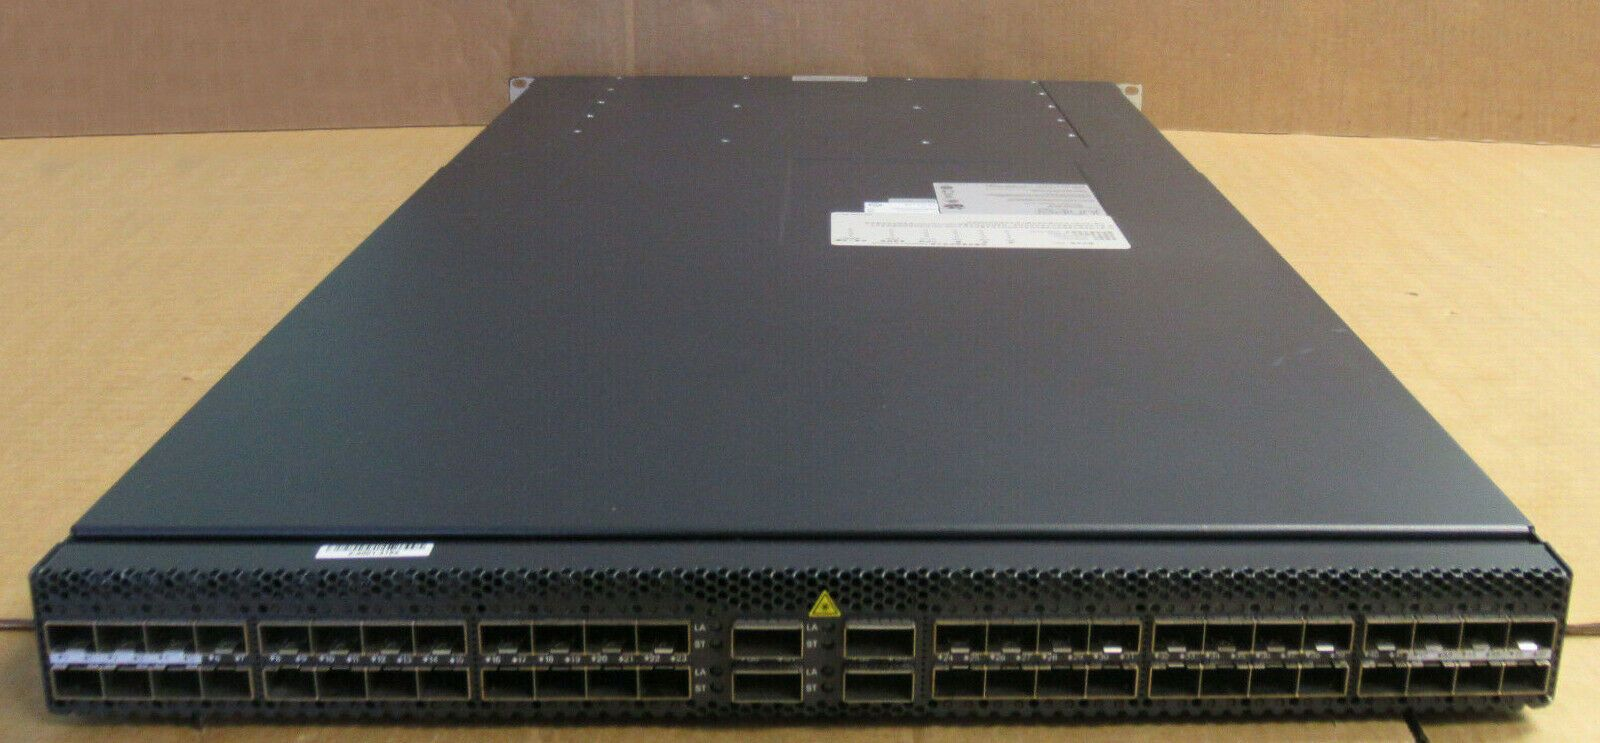 Juniper Networks QFX3500-48S4Q-D L3 1U 48x 10GB SFP 4x QSFP Ports Managed  Switch